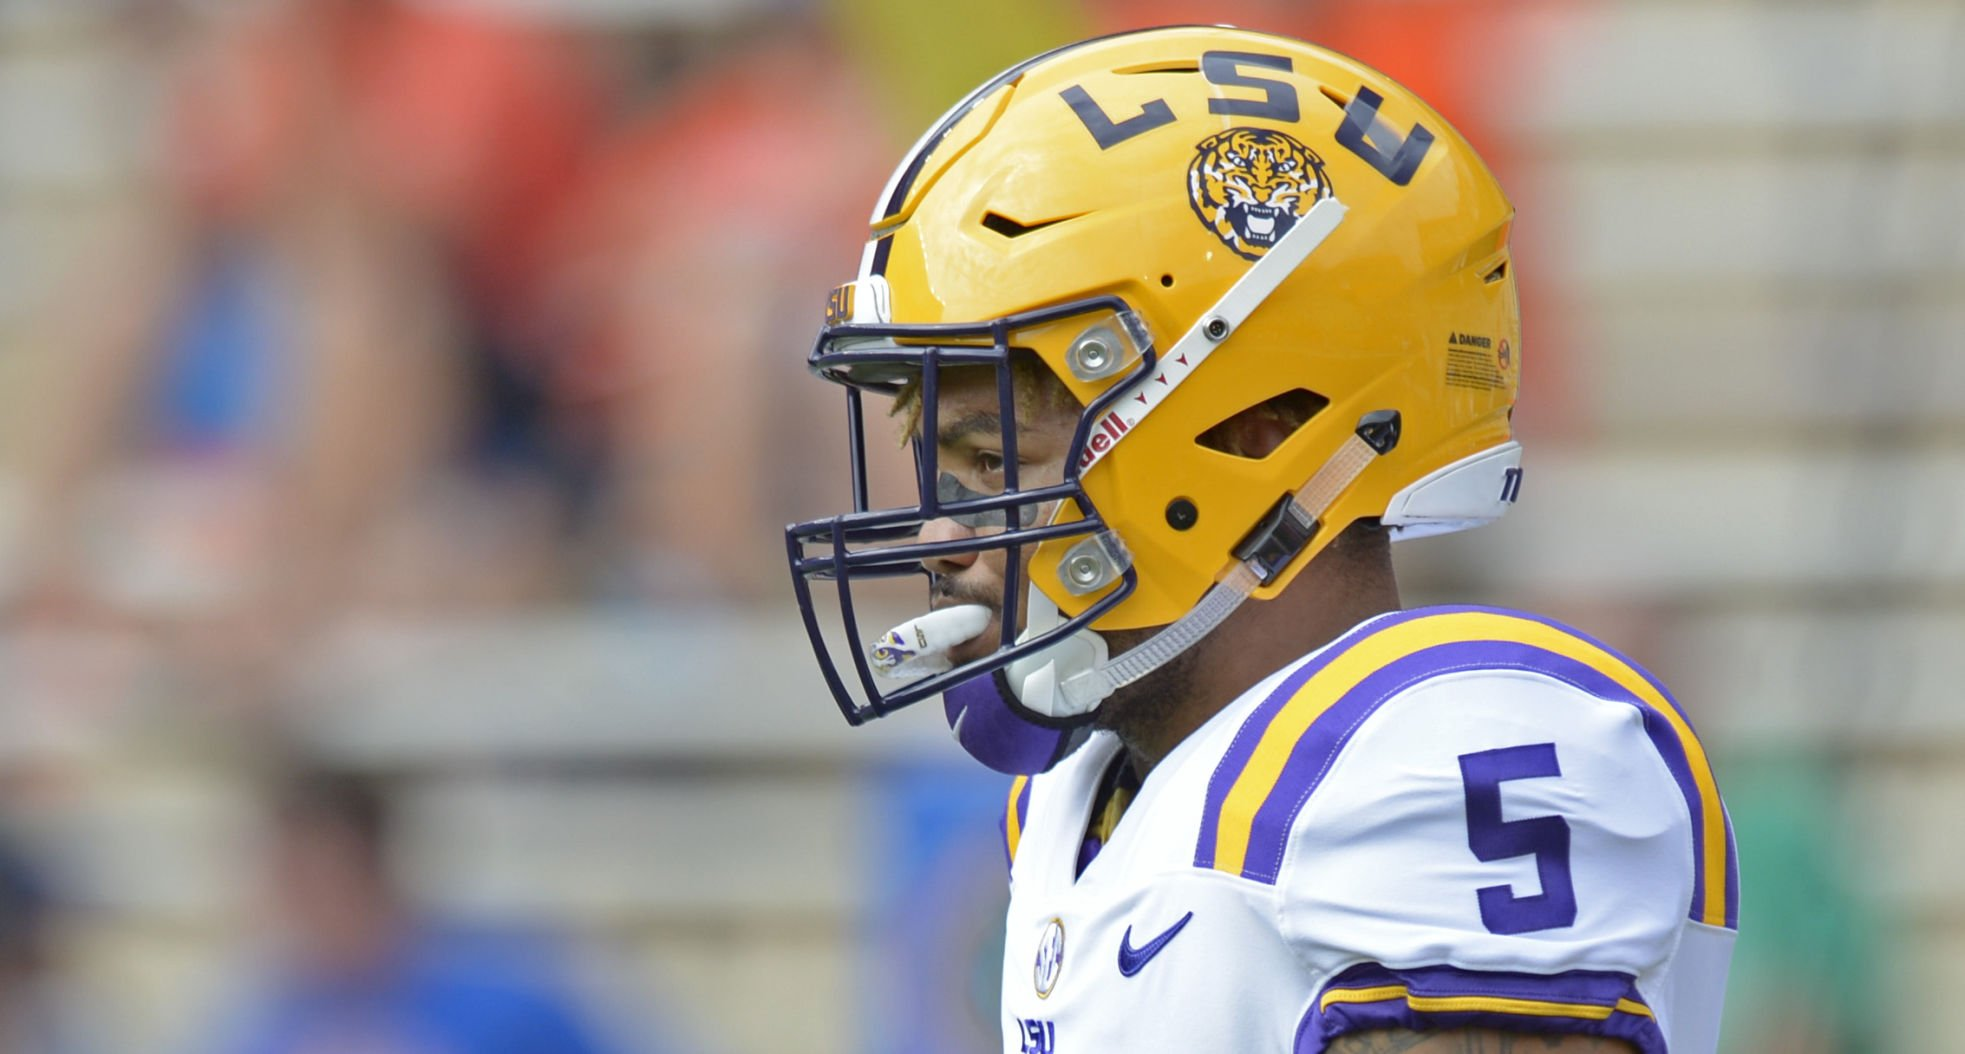 LSU players look ahead to Auburn game